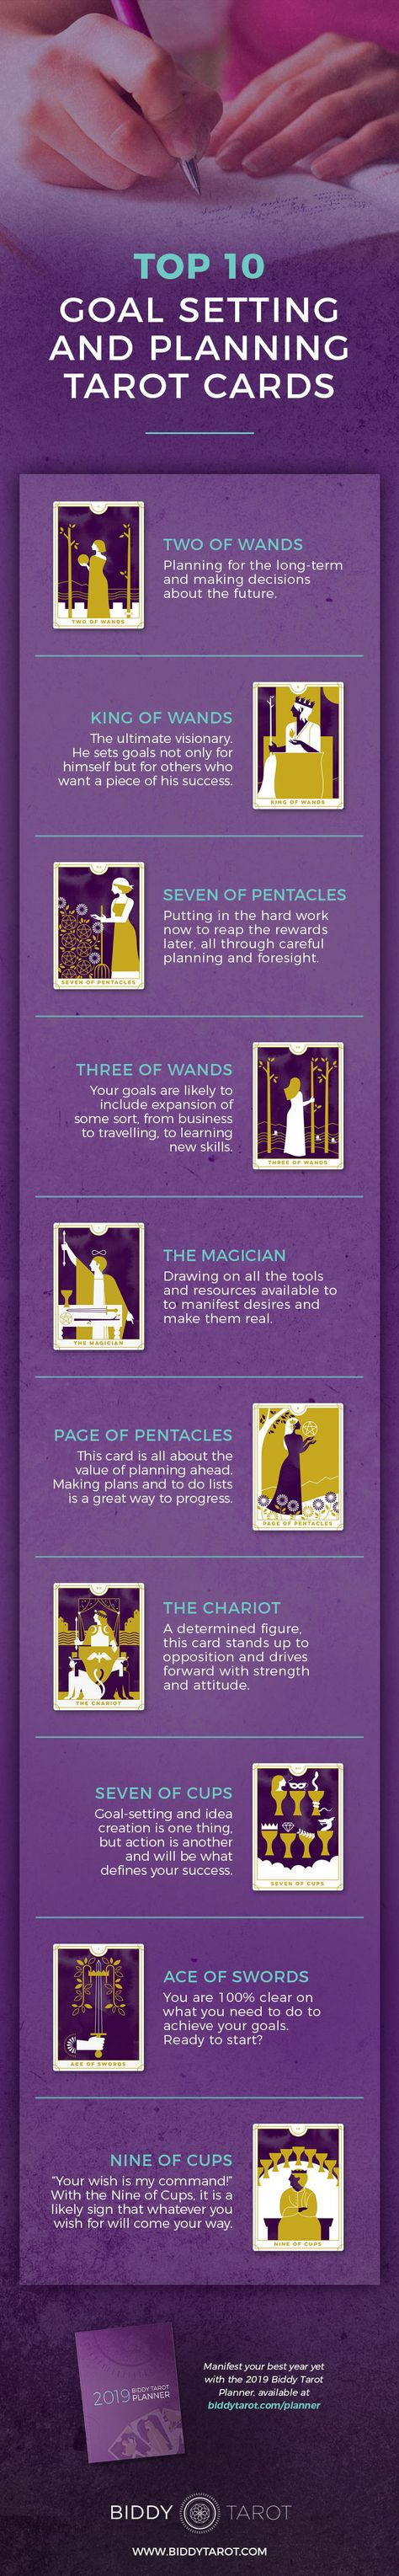 Top 10 Goal Setting and Planning Tarot cards! These are cards you'd like to see in your Goal Manifestation Spread! #tarot #goalsetting #planner #tarotcards #manifesting #biddytarot #manifestation #biddytarotplanner #learntarot #tarotcardmeanings #tarotspread